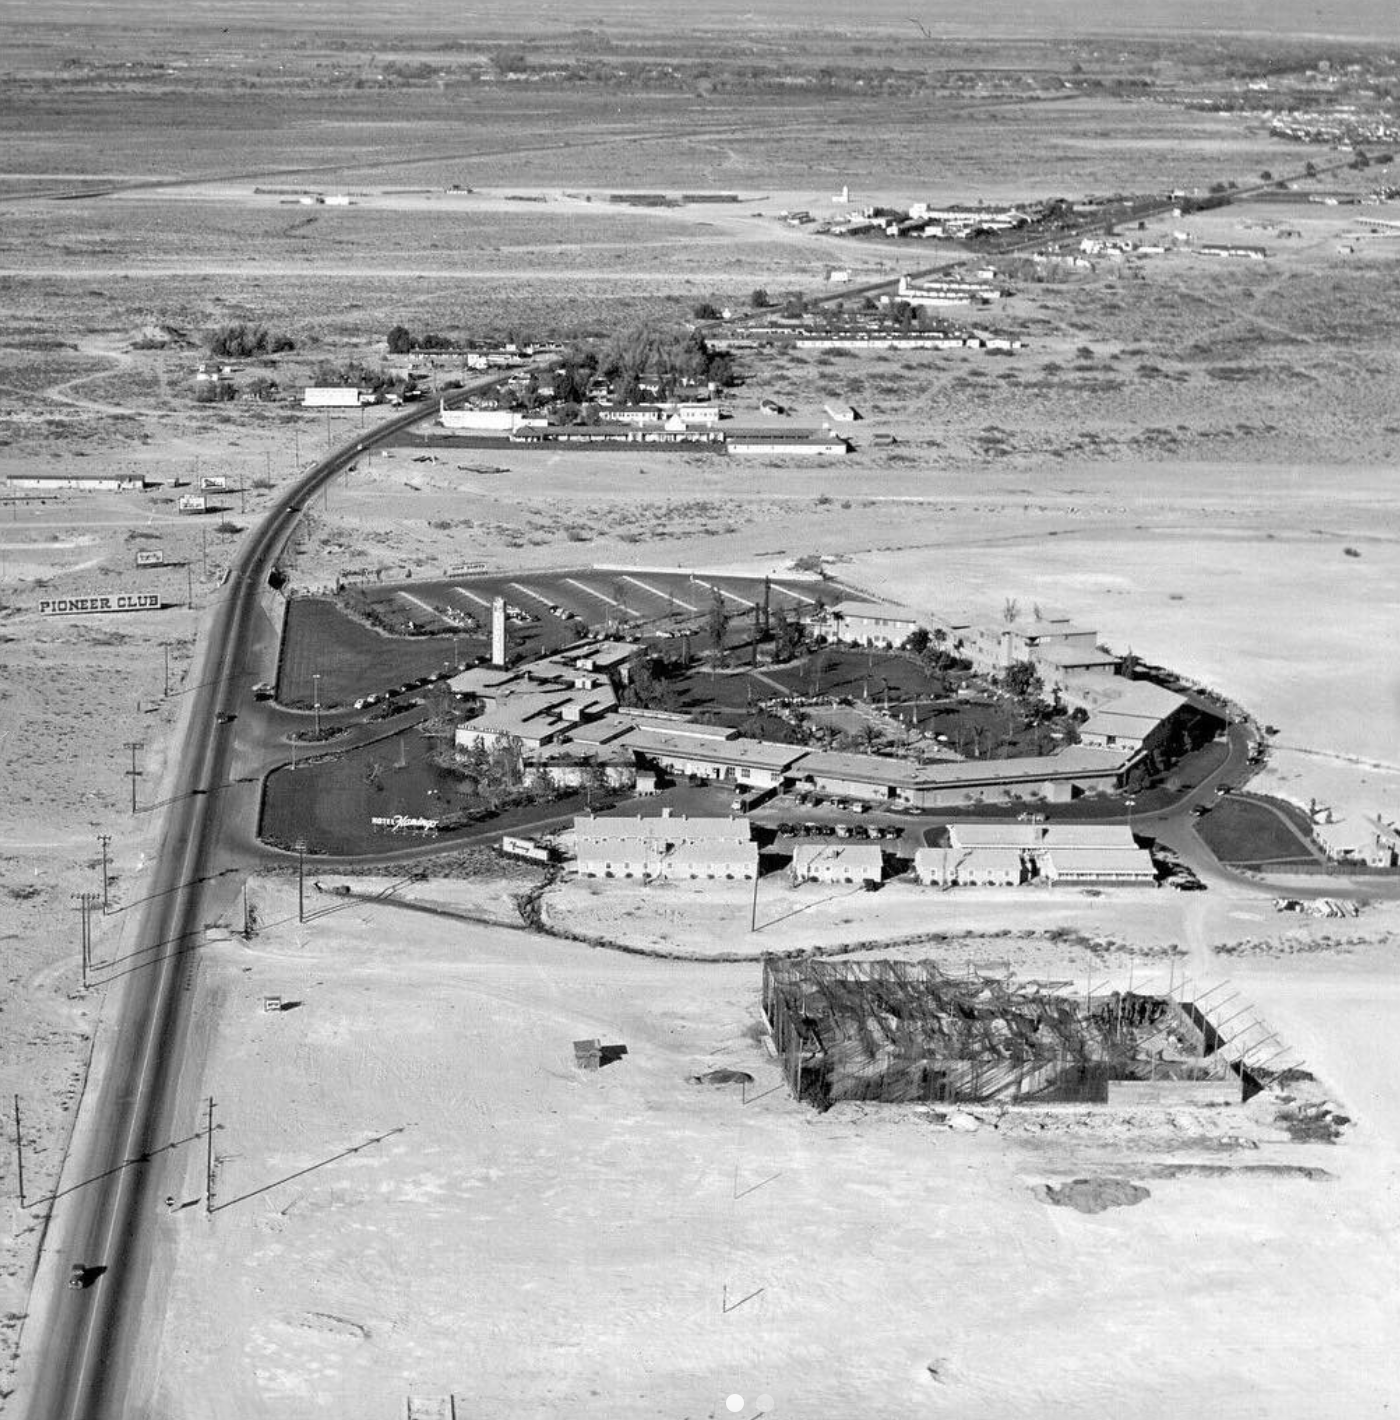 Over the Flamingo, 1949. This is 70 years ago, looking north over a 2-lane Las Vegas Strip/Hwy 91. The second photo is 1952. The Strip has been widened, and the Sands is under construction. Photo by Las Vegas News Bureau.